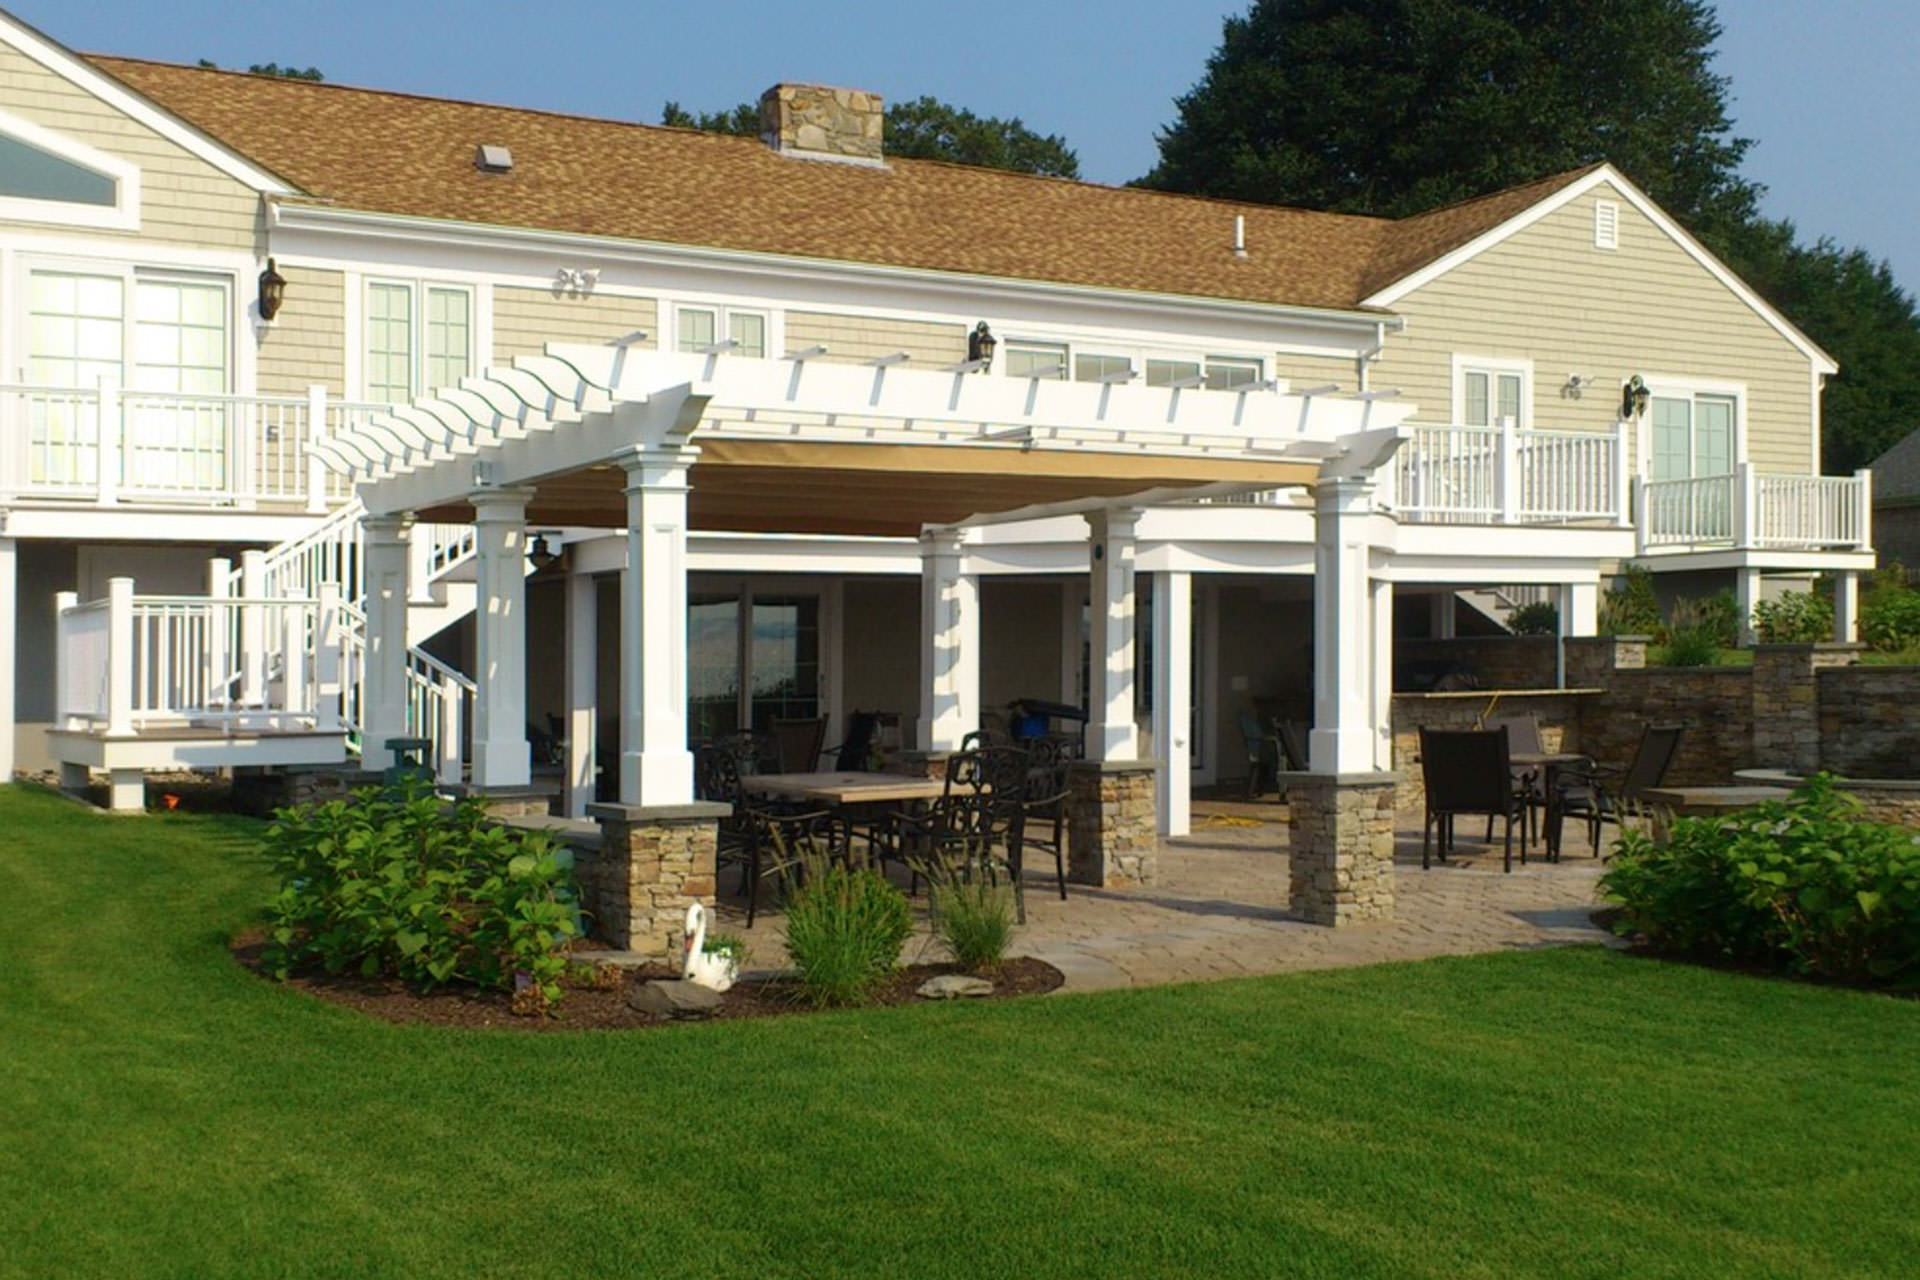 Choosing a Retractable Awning: ShadeFX